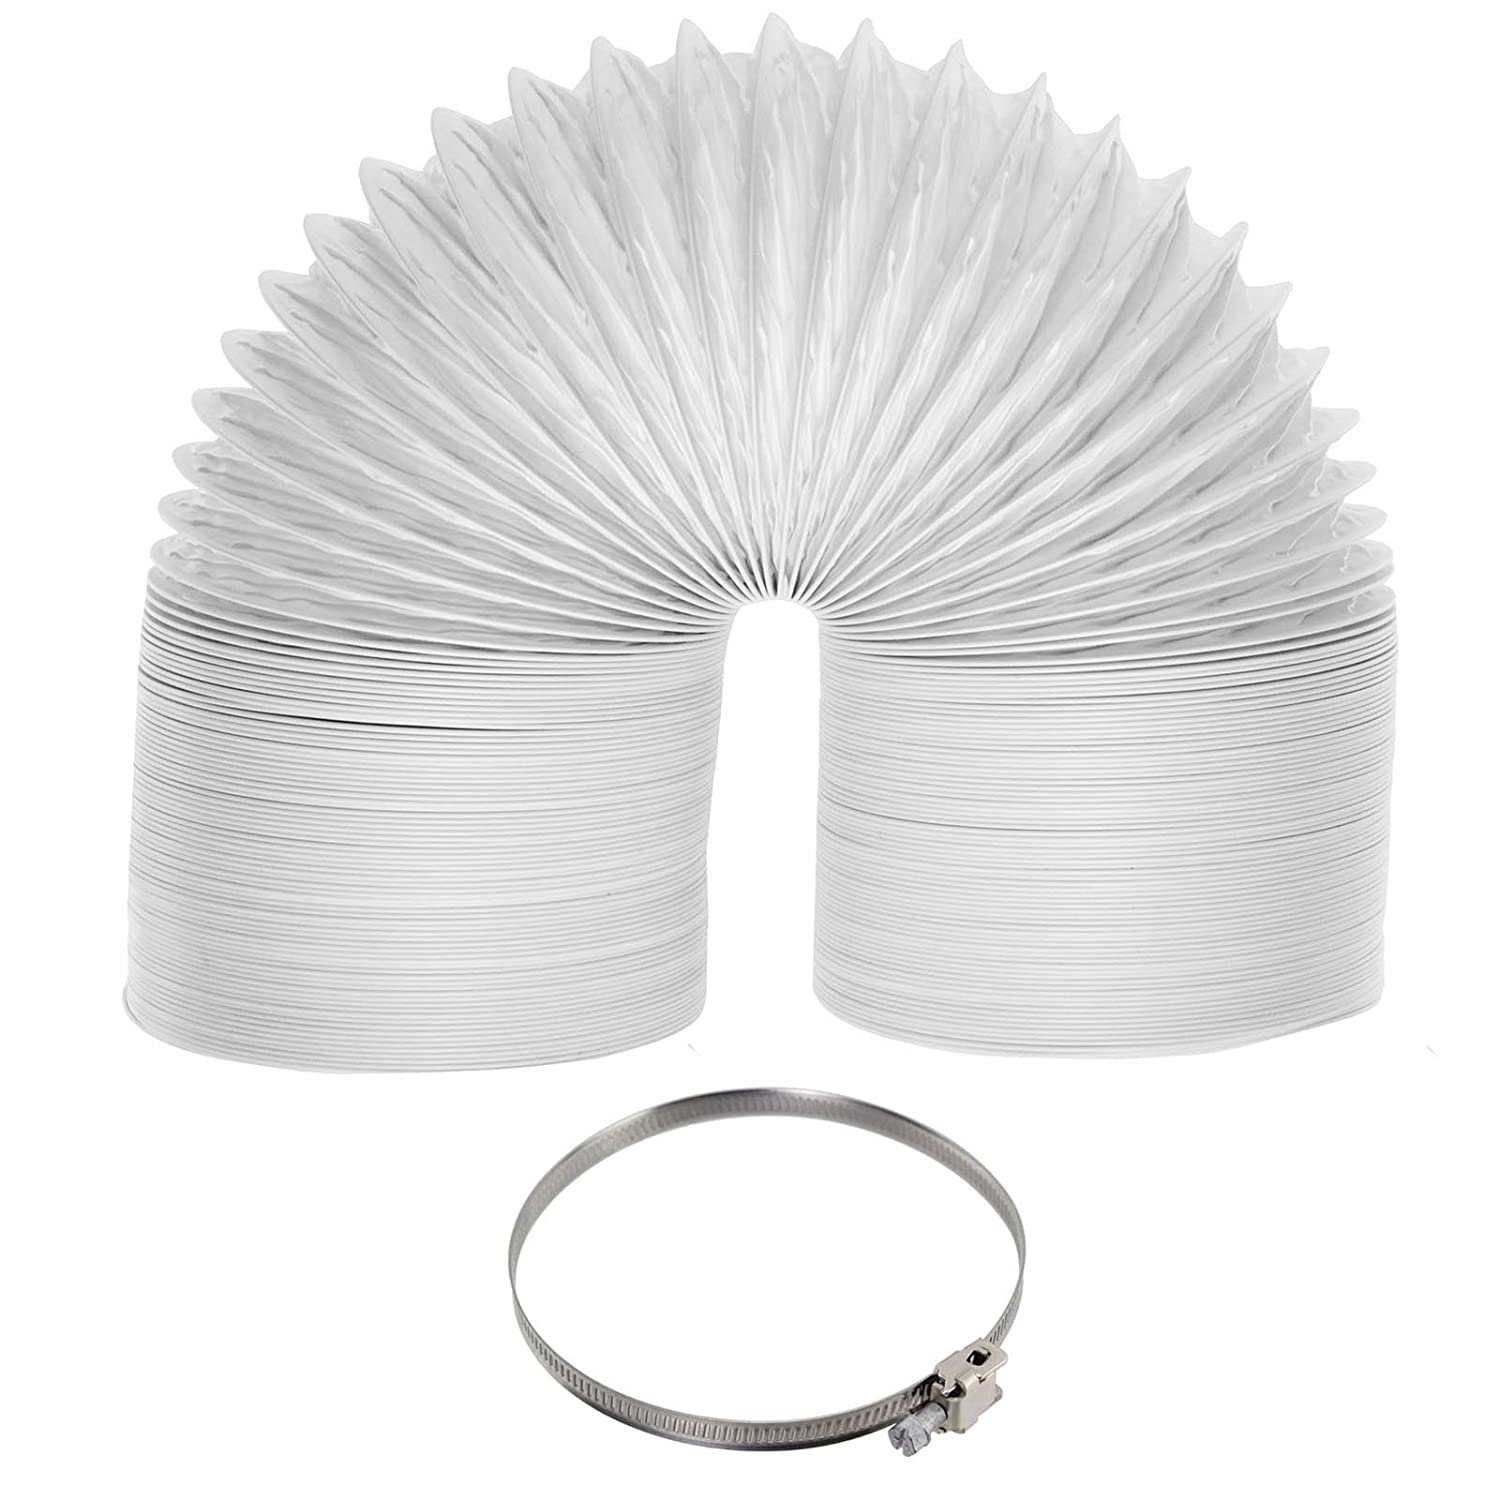 Spares2go Universal Tumble Dryer Extra Long Vent Hose & Jubilee Clip Kit (6 Metre, 100mm Diameter)